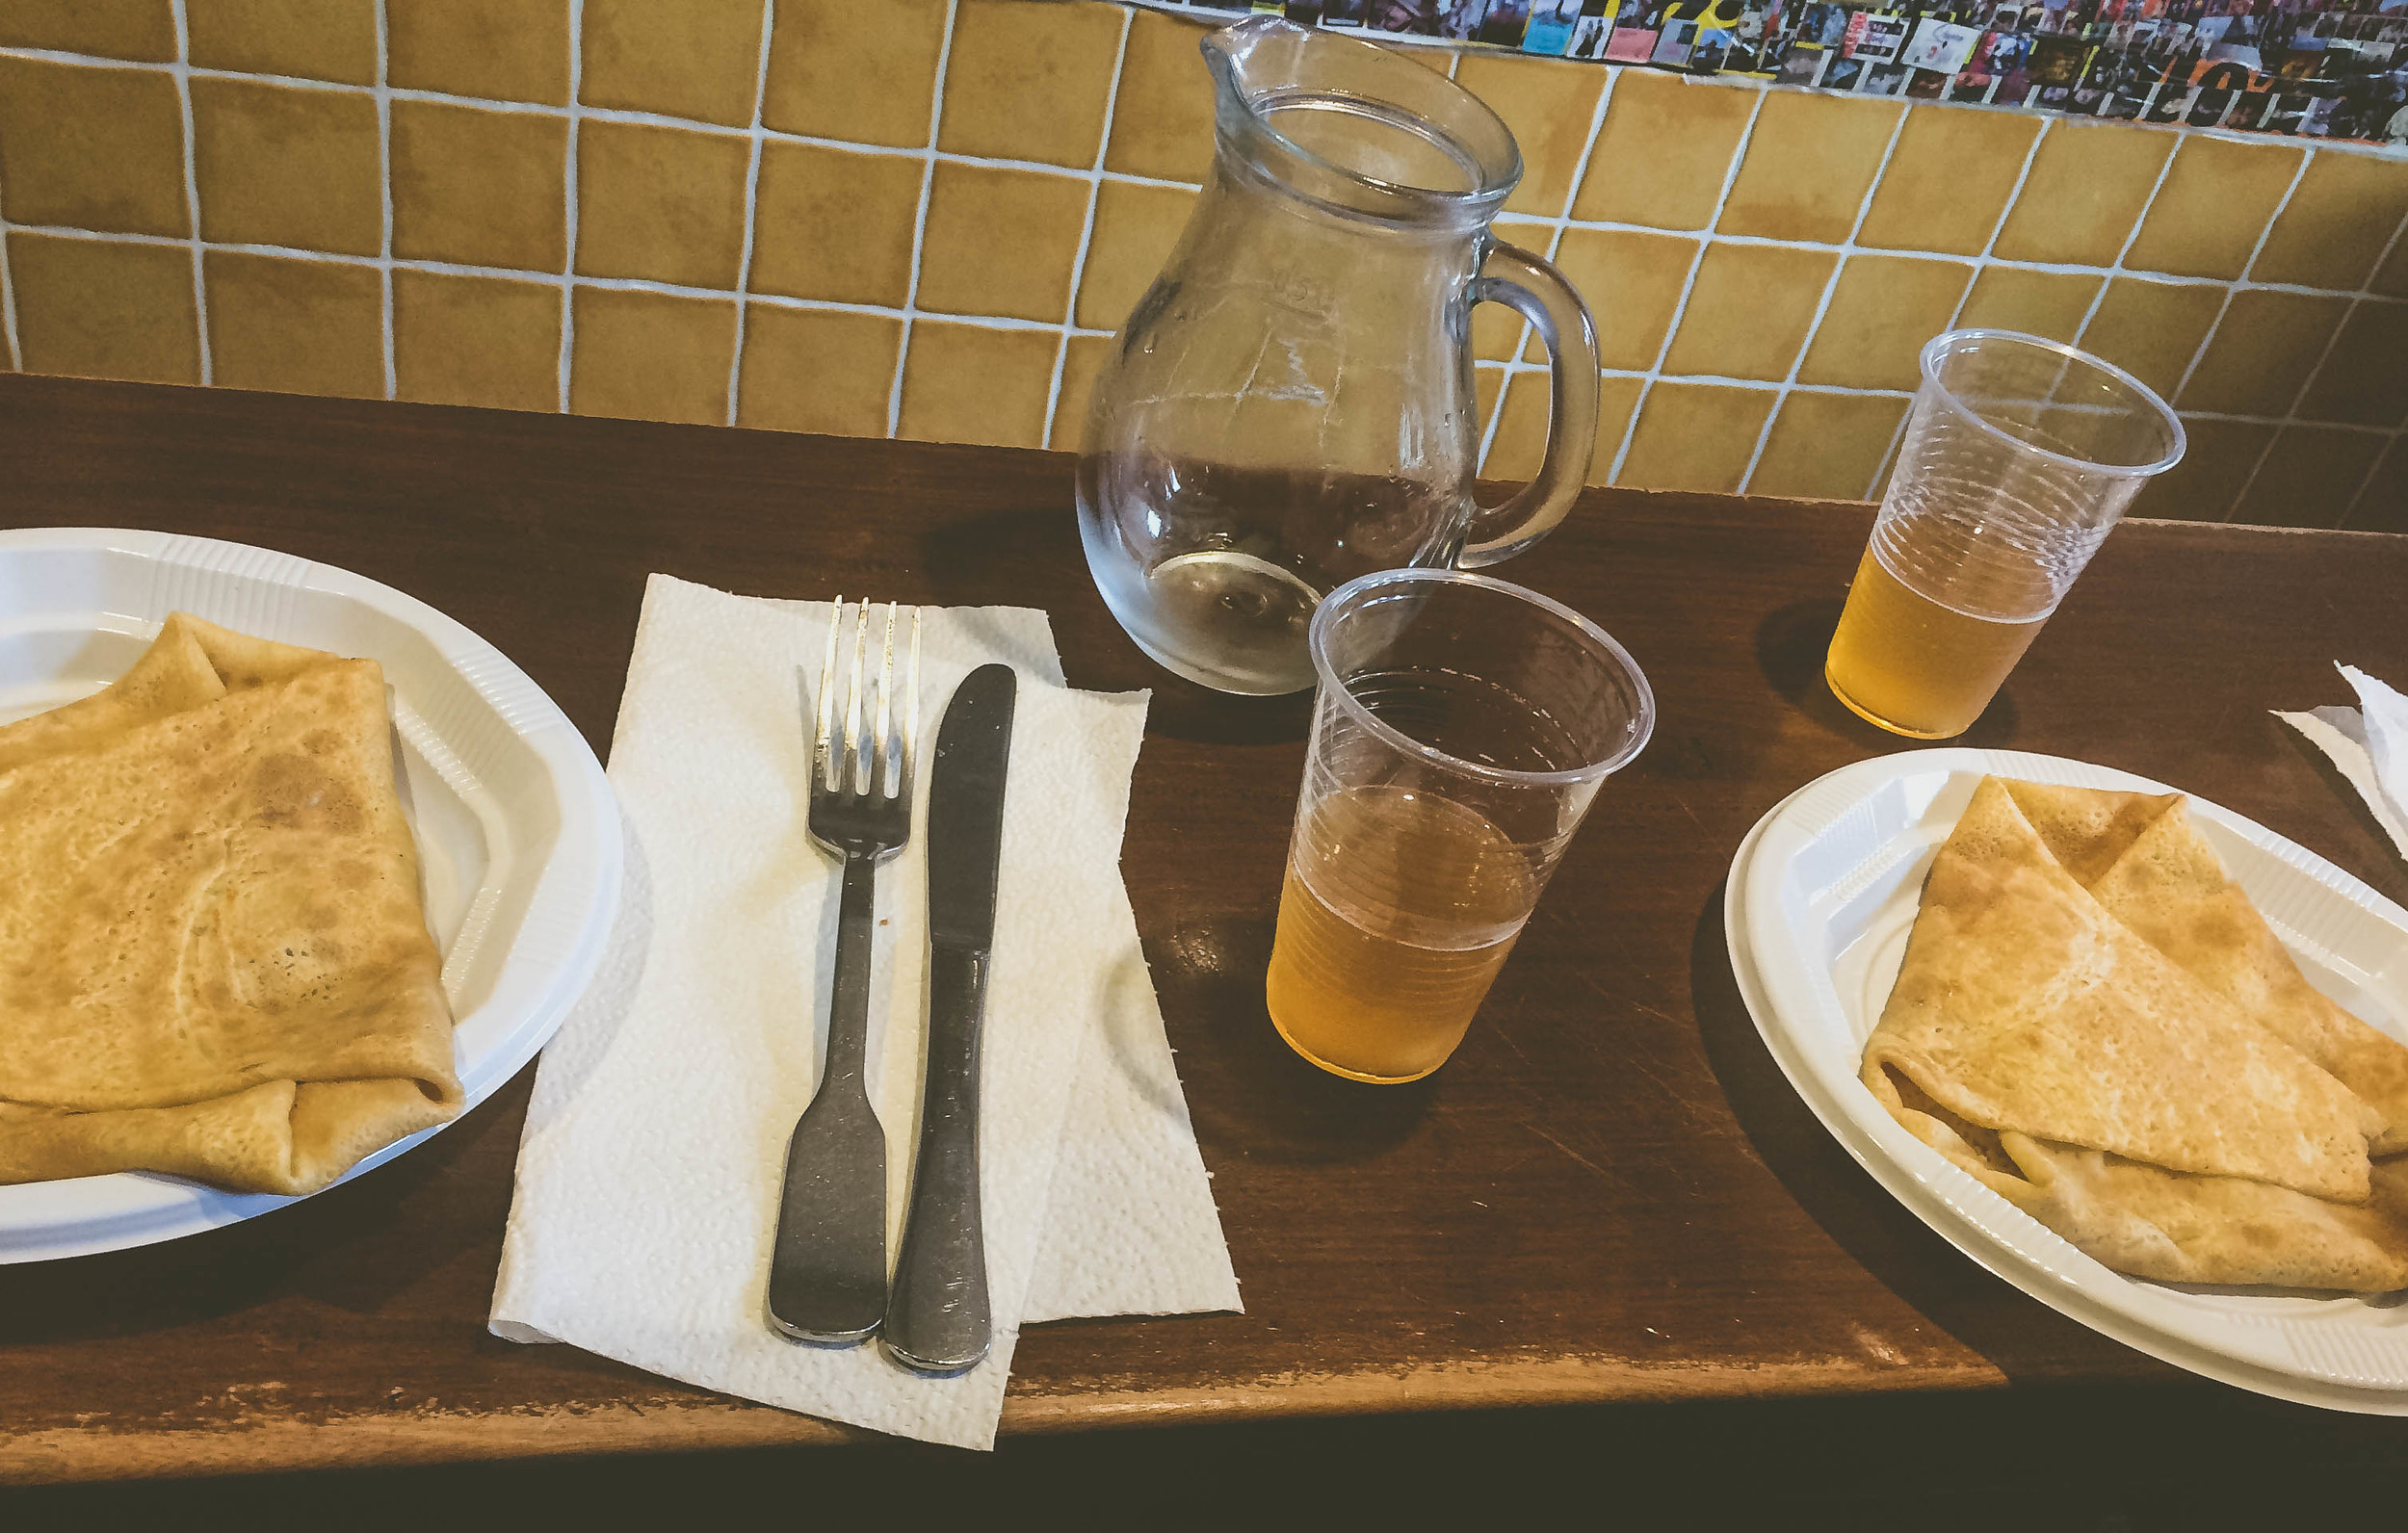 A crepe lunch for 5 euros per person: you get a savory crepe (ham & cheese), a sweet crepe (butter, sugar and cinnamon) and a pichet of cider to share.